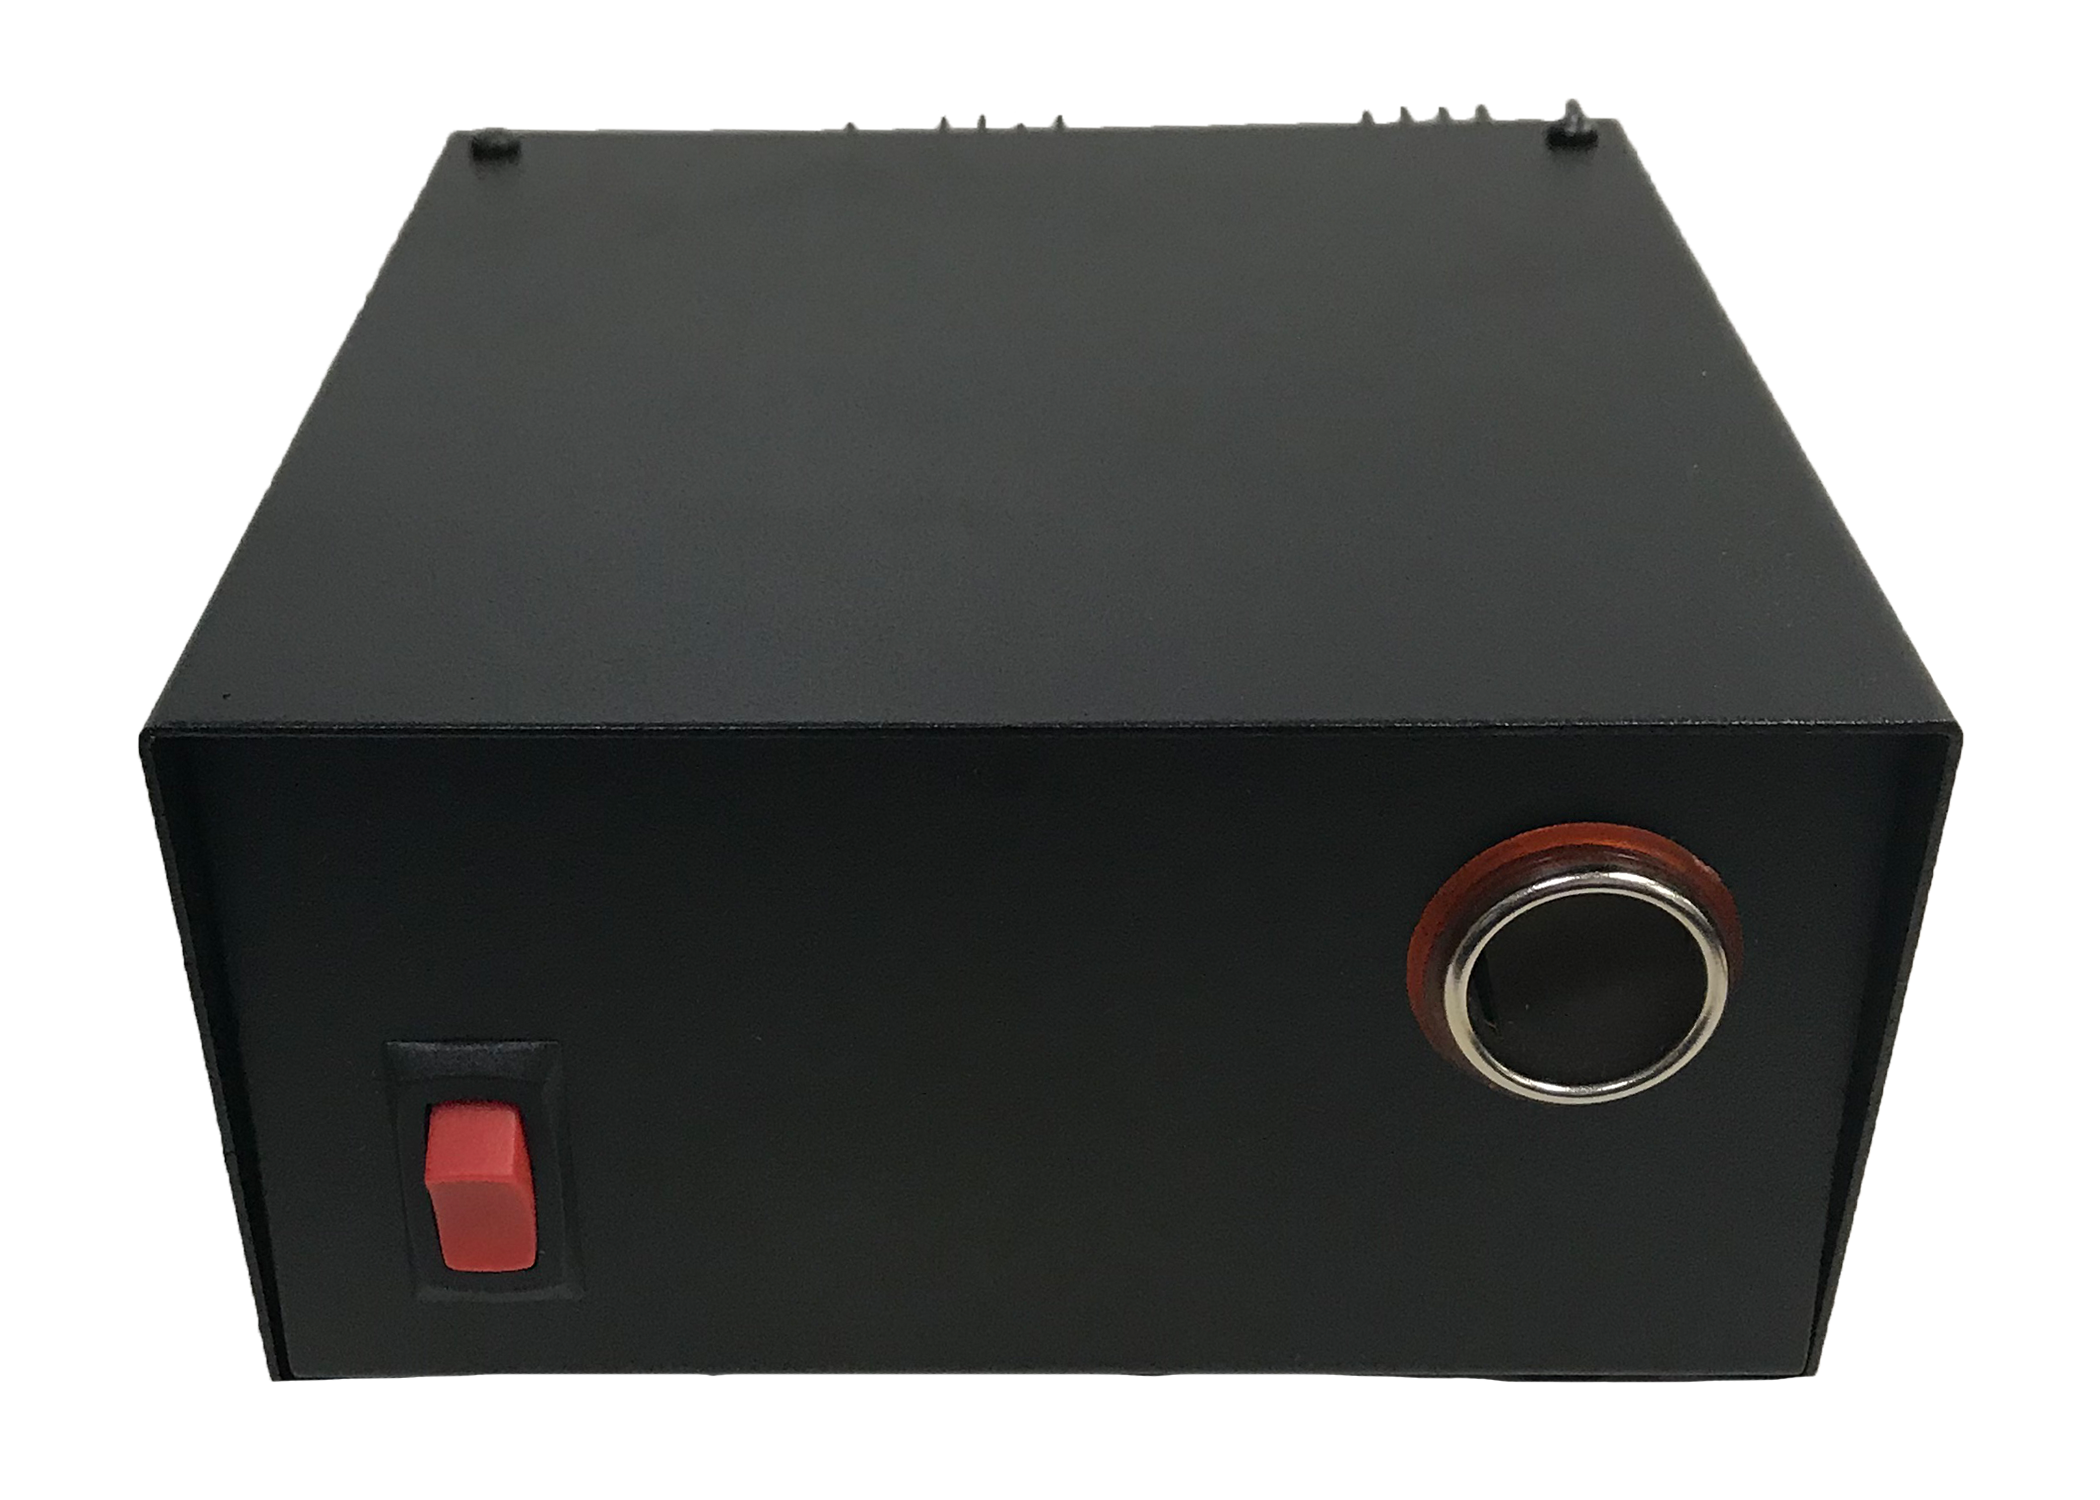 RS5L - ASTRON 5 AMP POWER SUPPLY WITH CIGARETTE ADAPTER PLUG